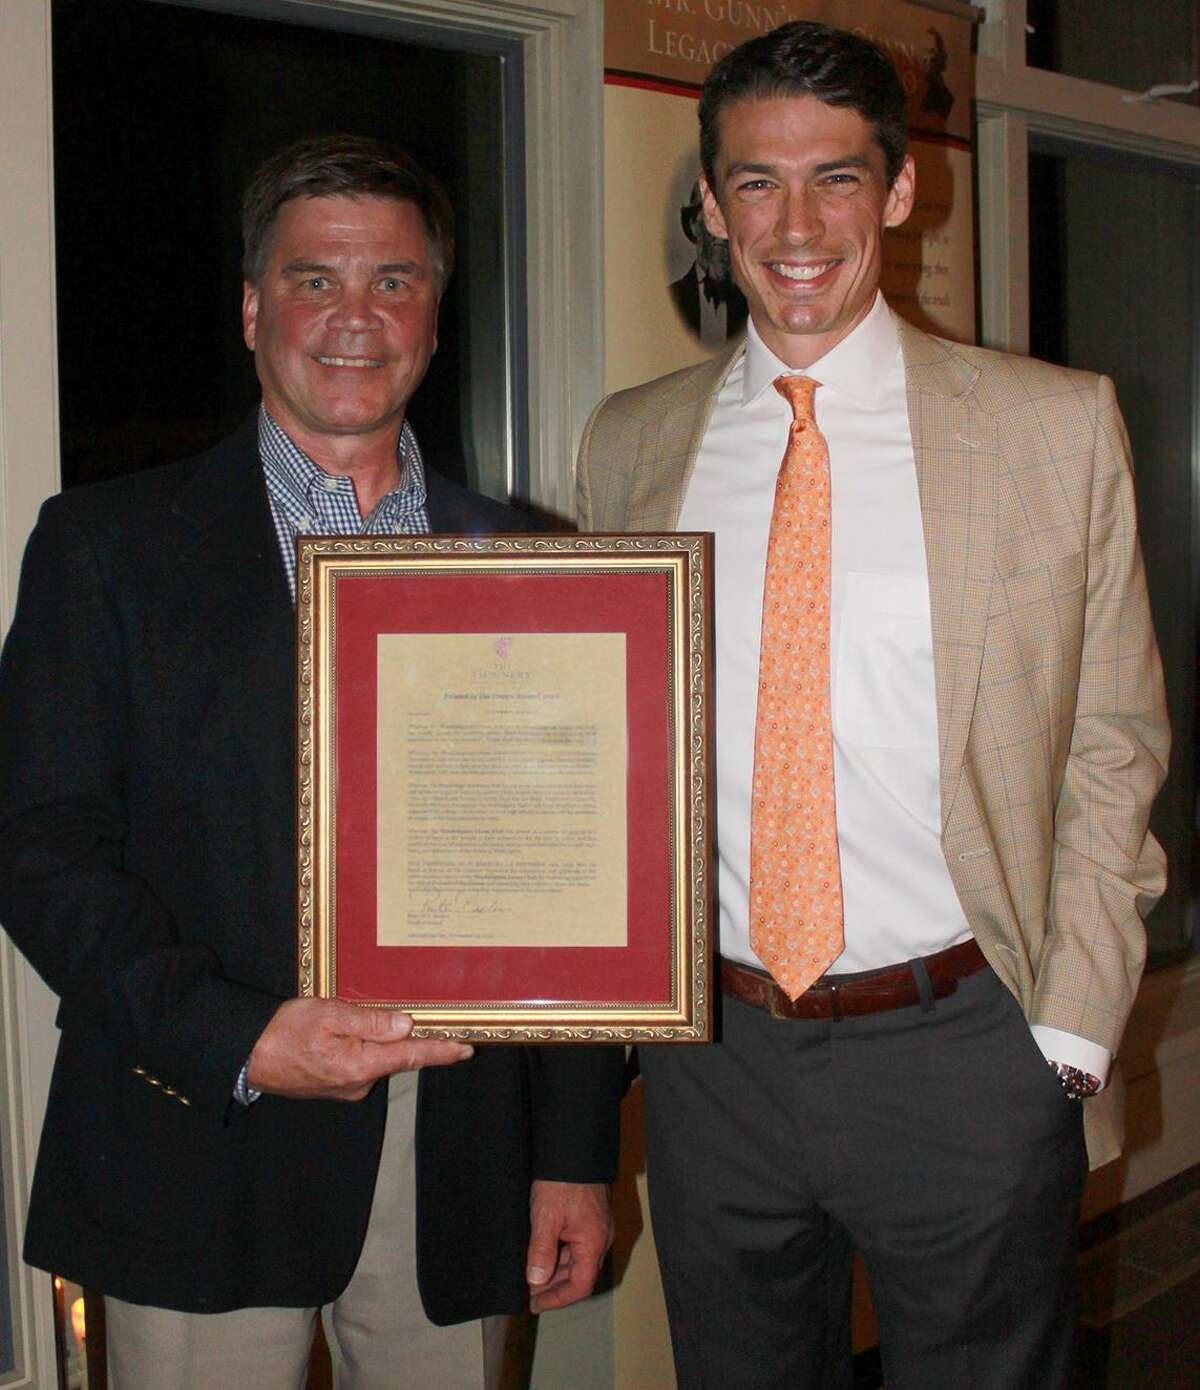 The Washington Lions Club was recently presented the Gunnery's Friend of the Green Award. Above, John Quist, president of the Washington Lions Club, left, receives the award from Head of School Peter Becker.